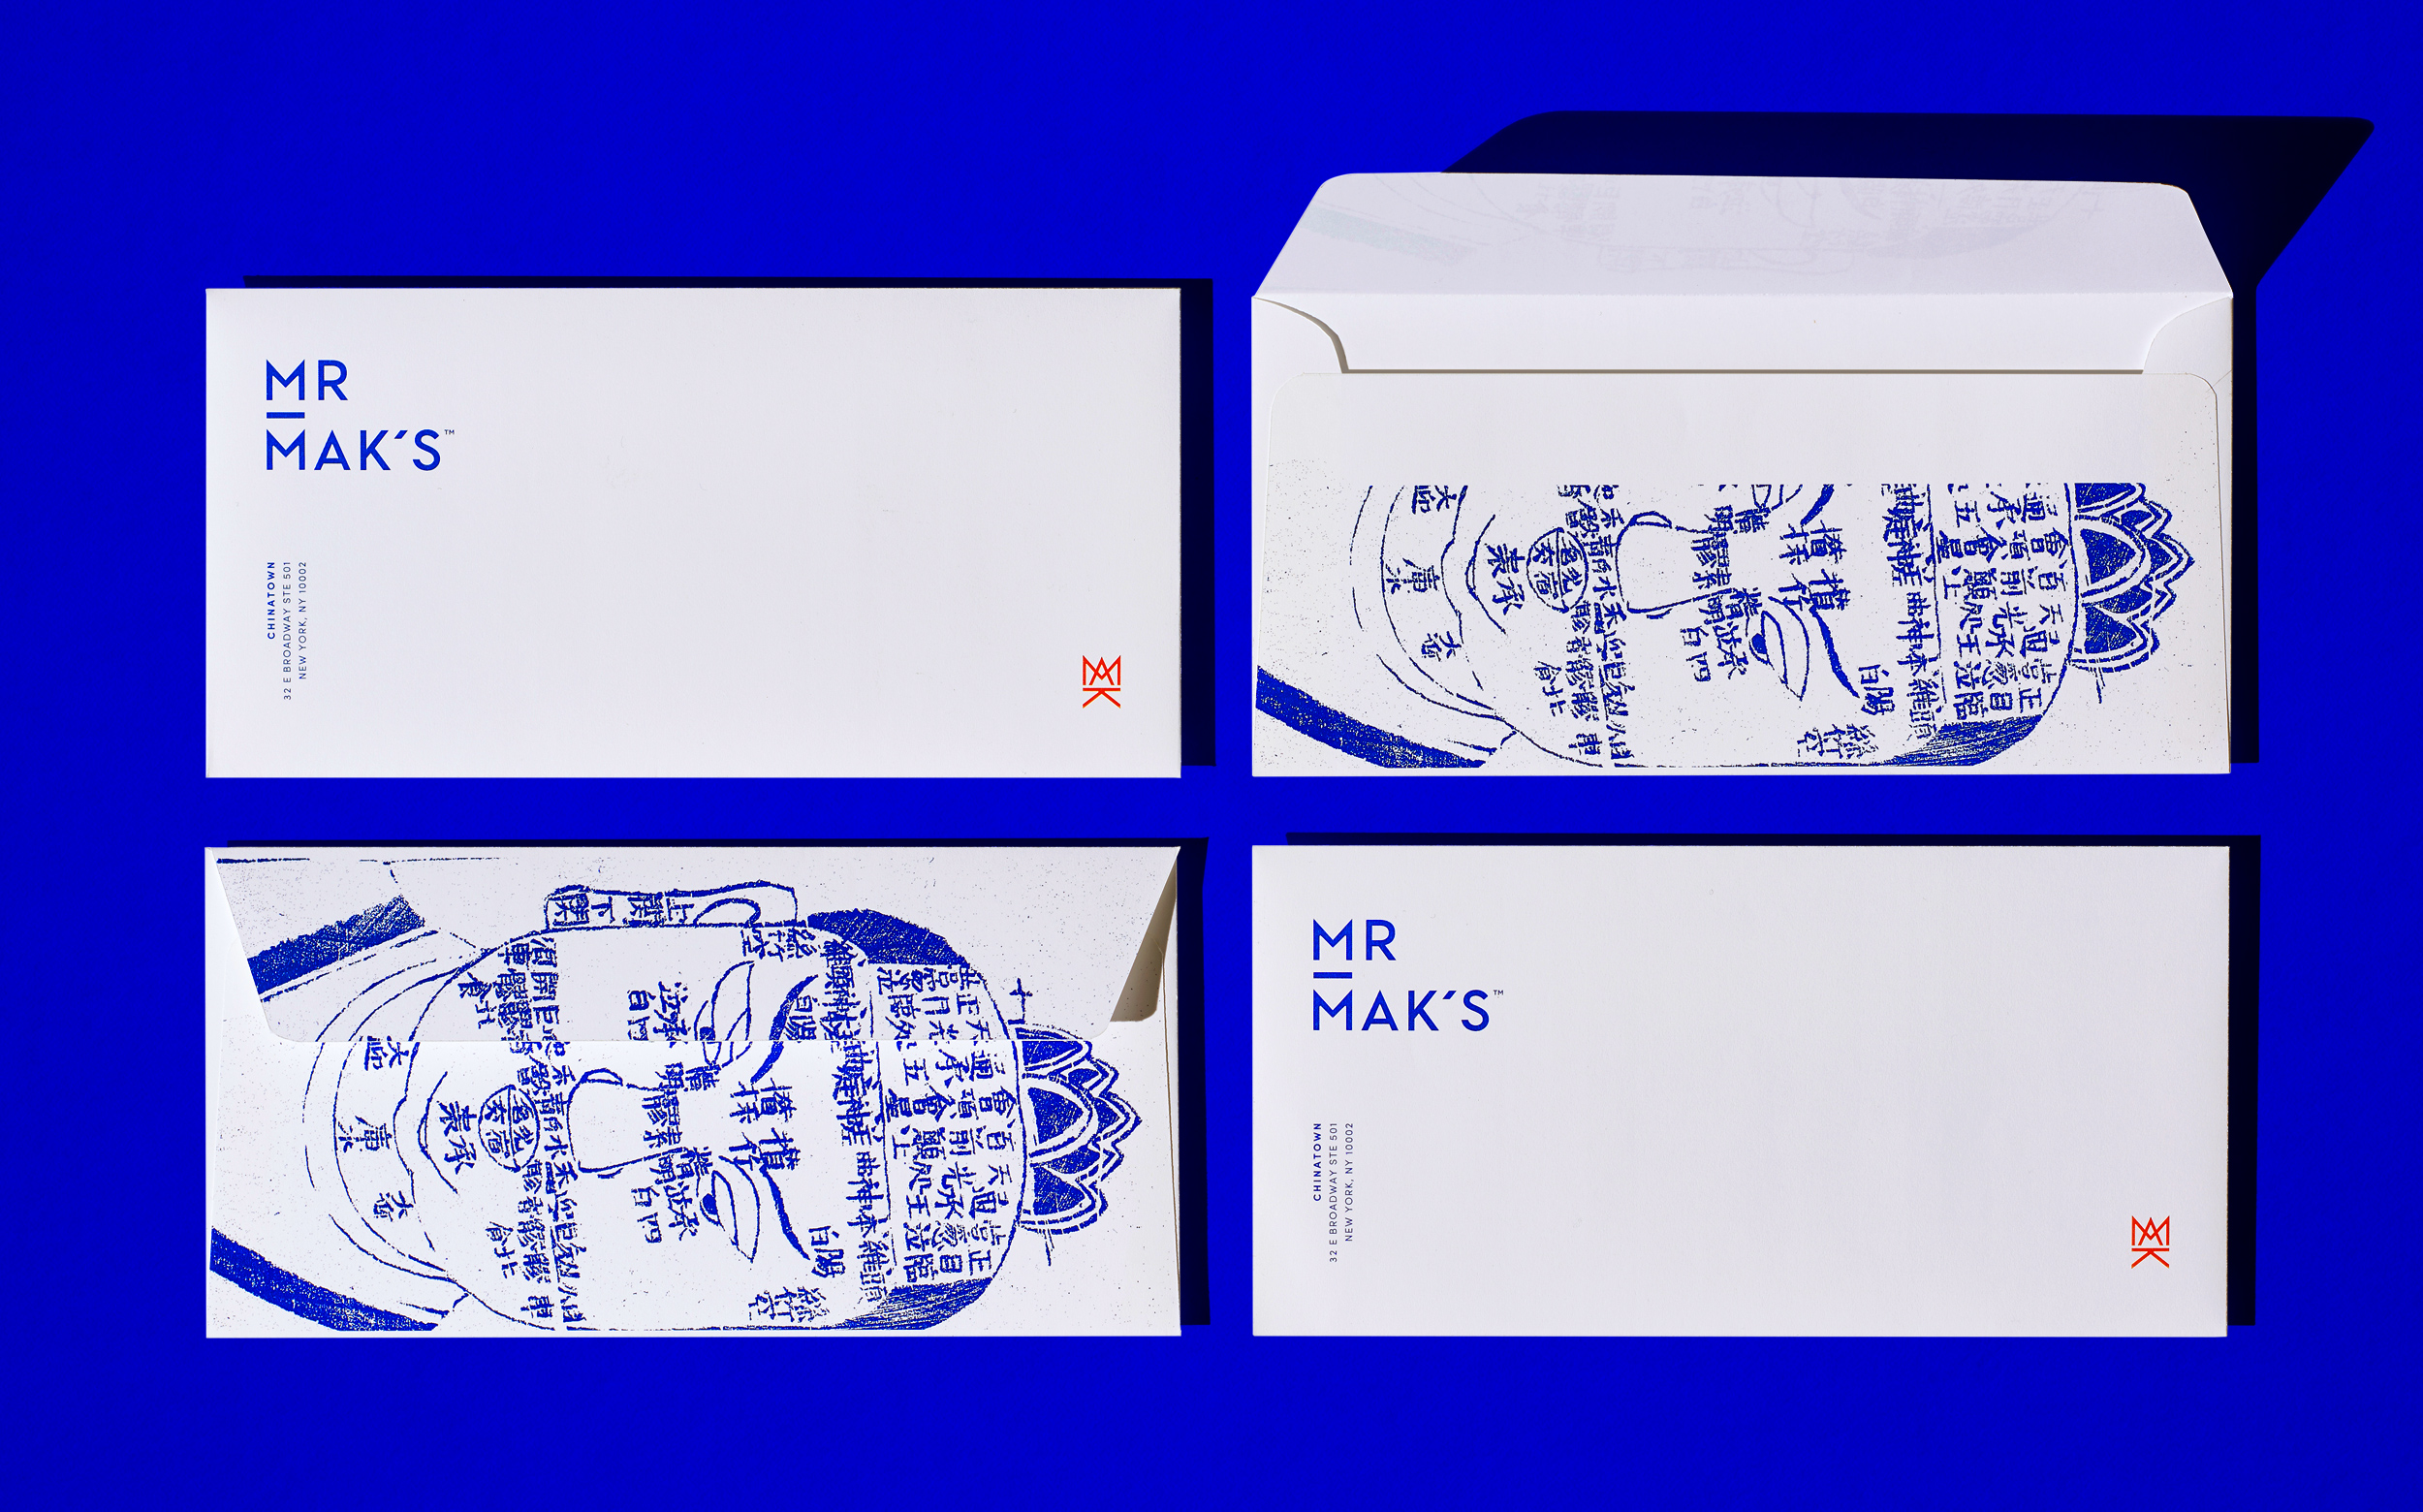 Mr. Mak's brand identity, custom stationery. Designed by Abby Haddican at Werner Design Werks.